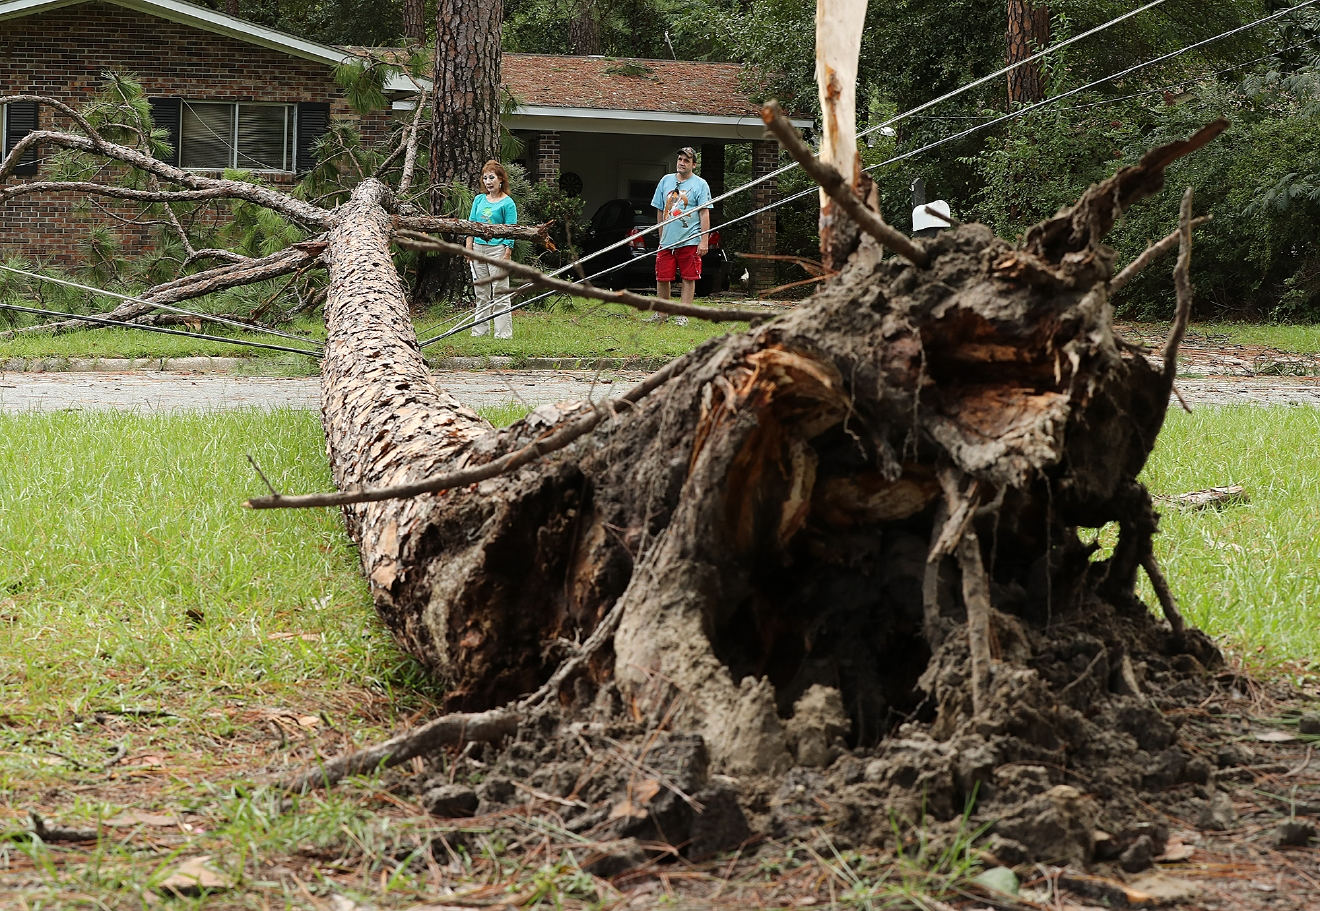 Chris Boland, rear right, whose home just missed a direct hit from a downed pine tree over the power lines, and Julia Tyson look over the aftermath Tropical Storm Hermine Friday, Sept. 2, 2016, in Valdosta. Ga. (Curtis Compton/Atlanta Journal-Constitution via AP)